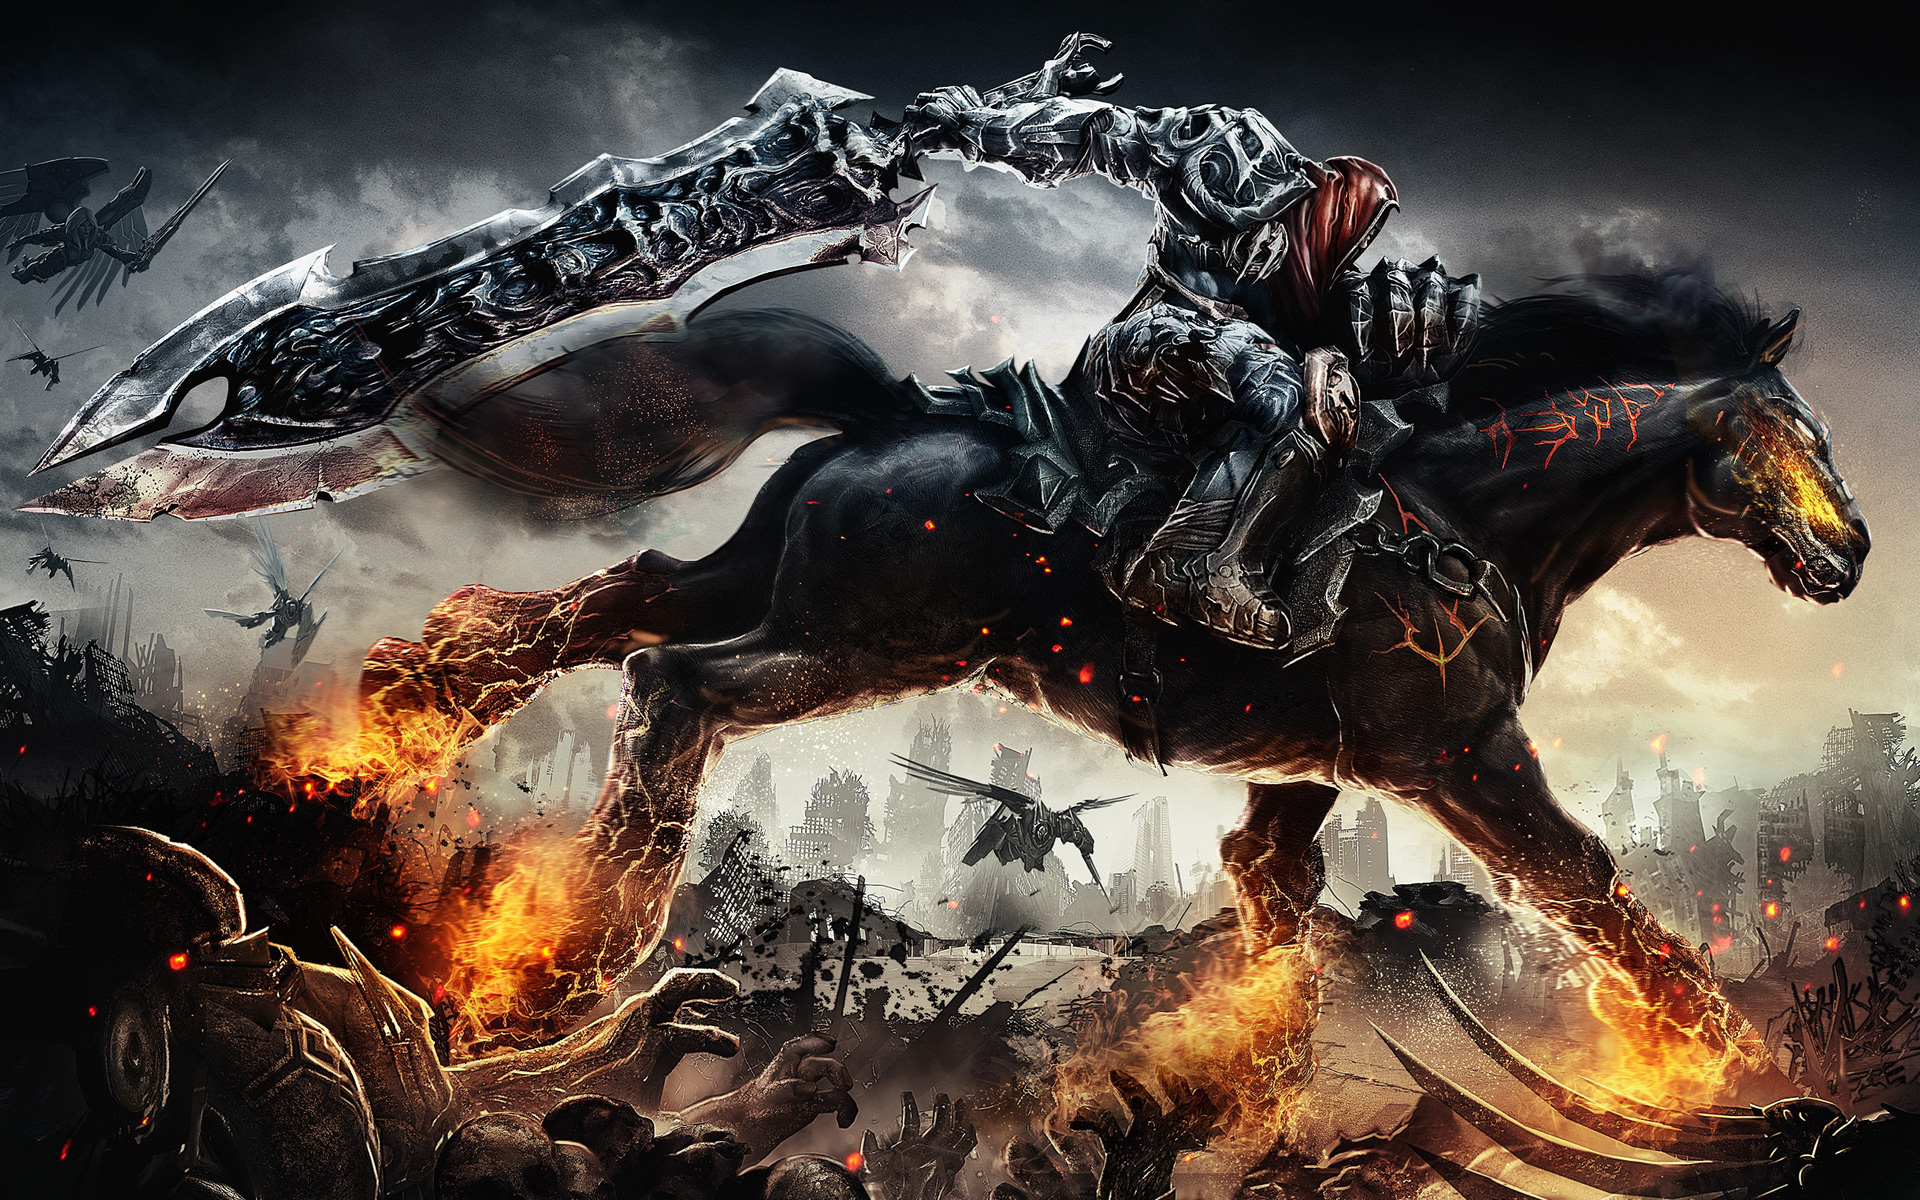 Darksiders 2 HD Wallpaper 19201080 1920x1200